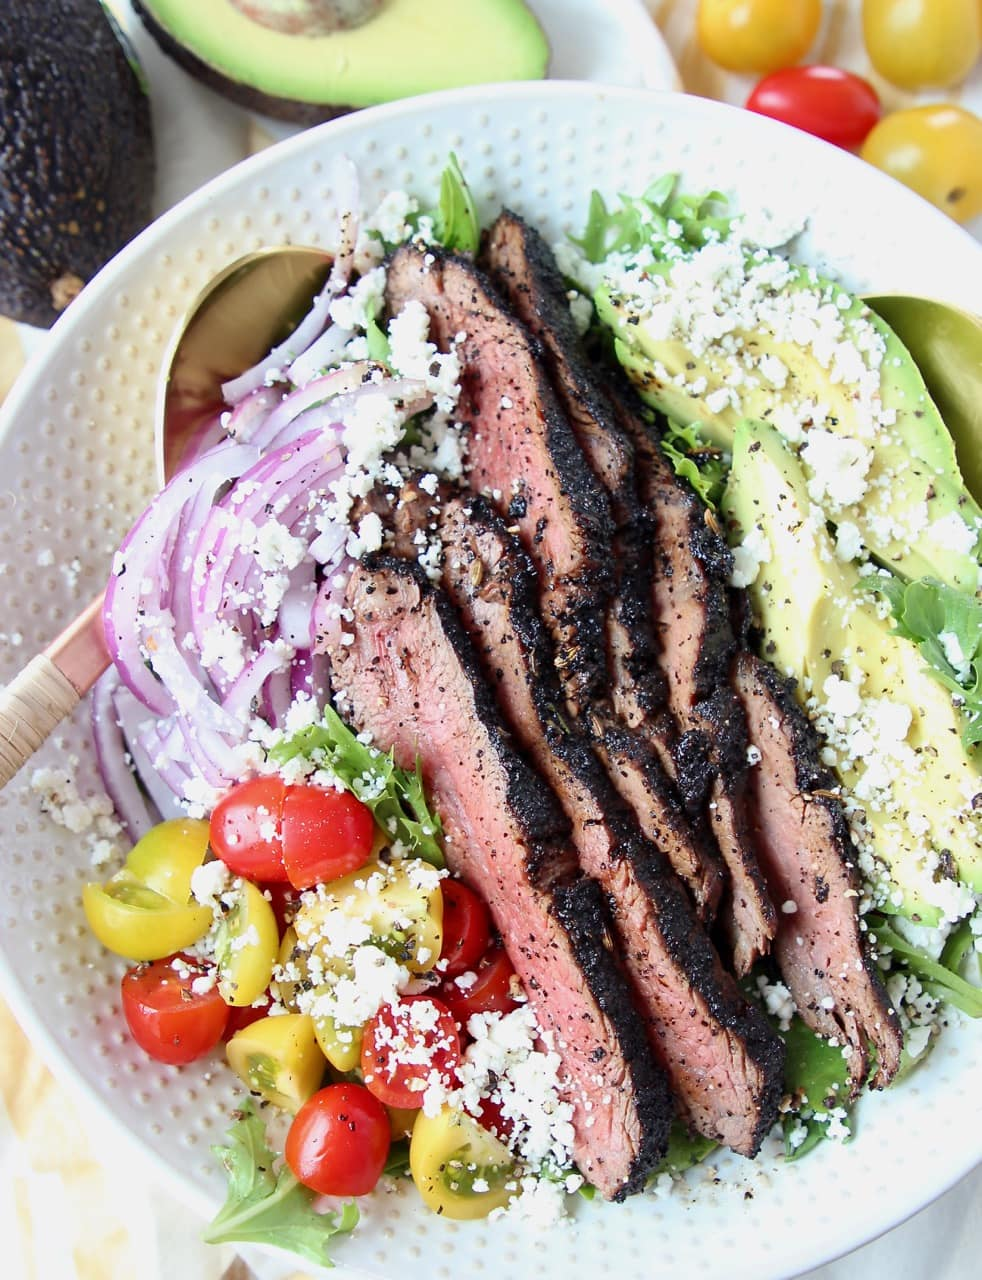 Grilled steak salad in a bowl with avocado, tomatoes and red onions